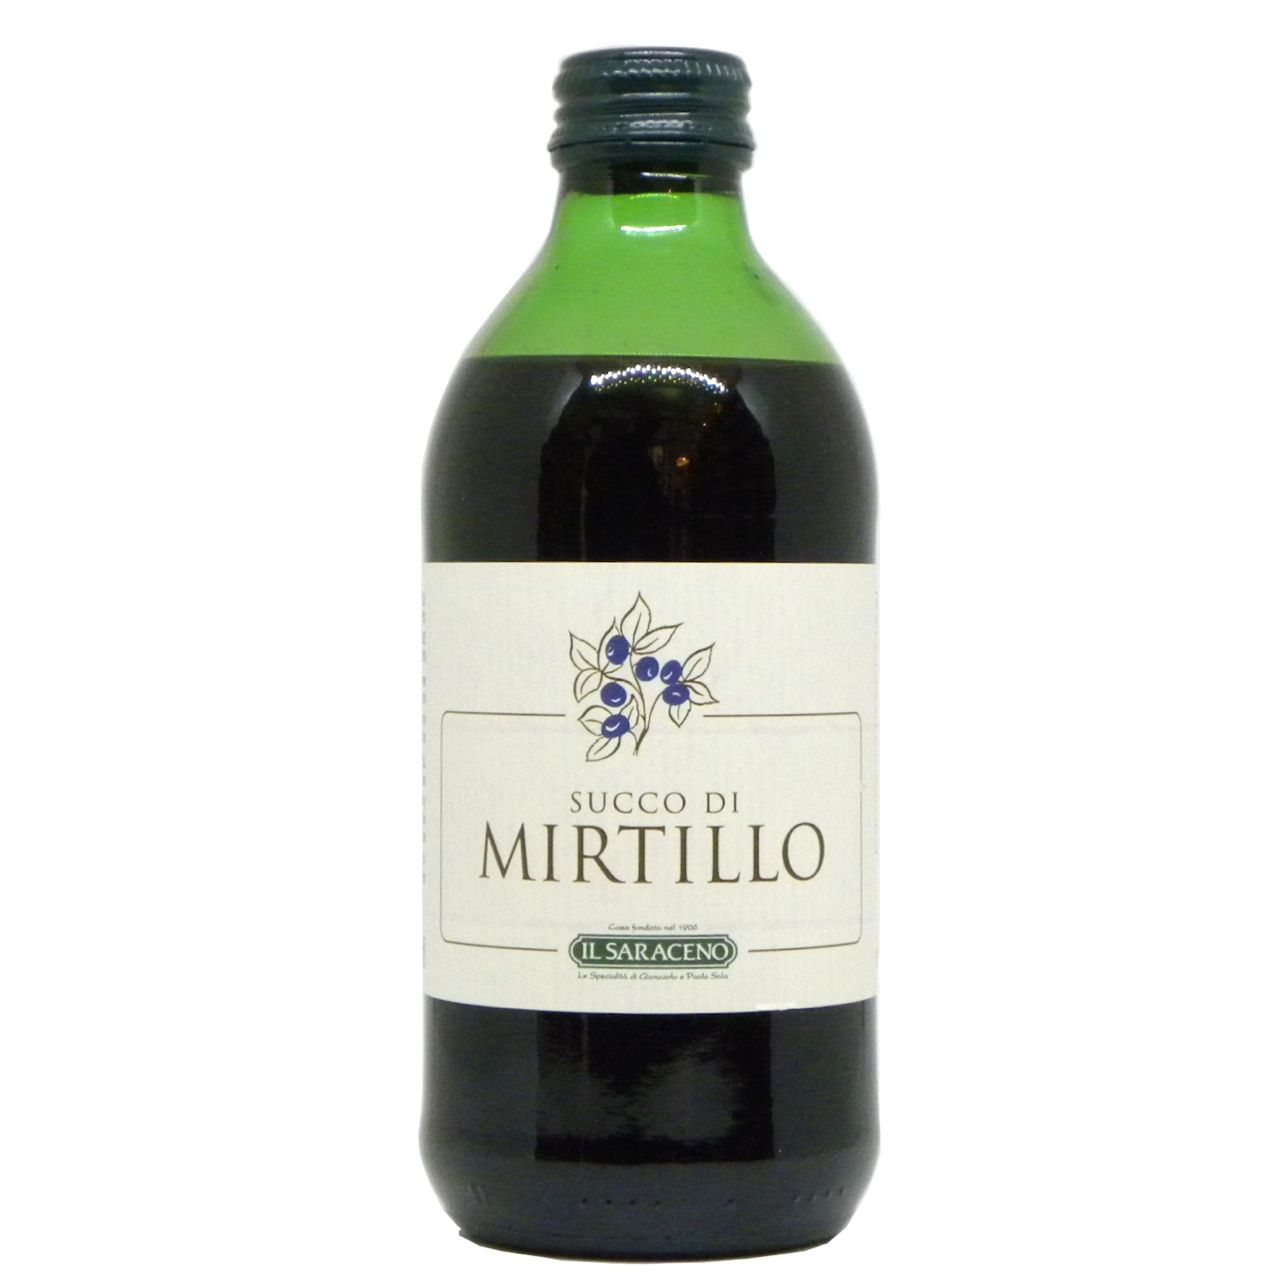 Succo di mirtillo 100% Sala Cereali – Sala Cereali Blueberry Juice 100% – Gustorotondo – Italian food boutique